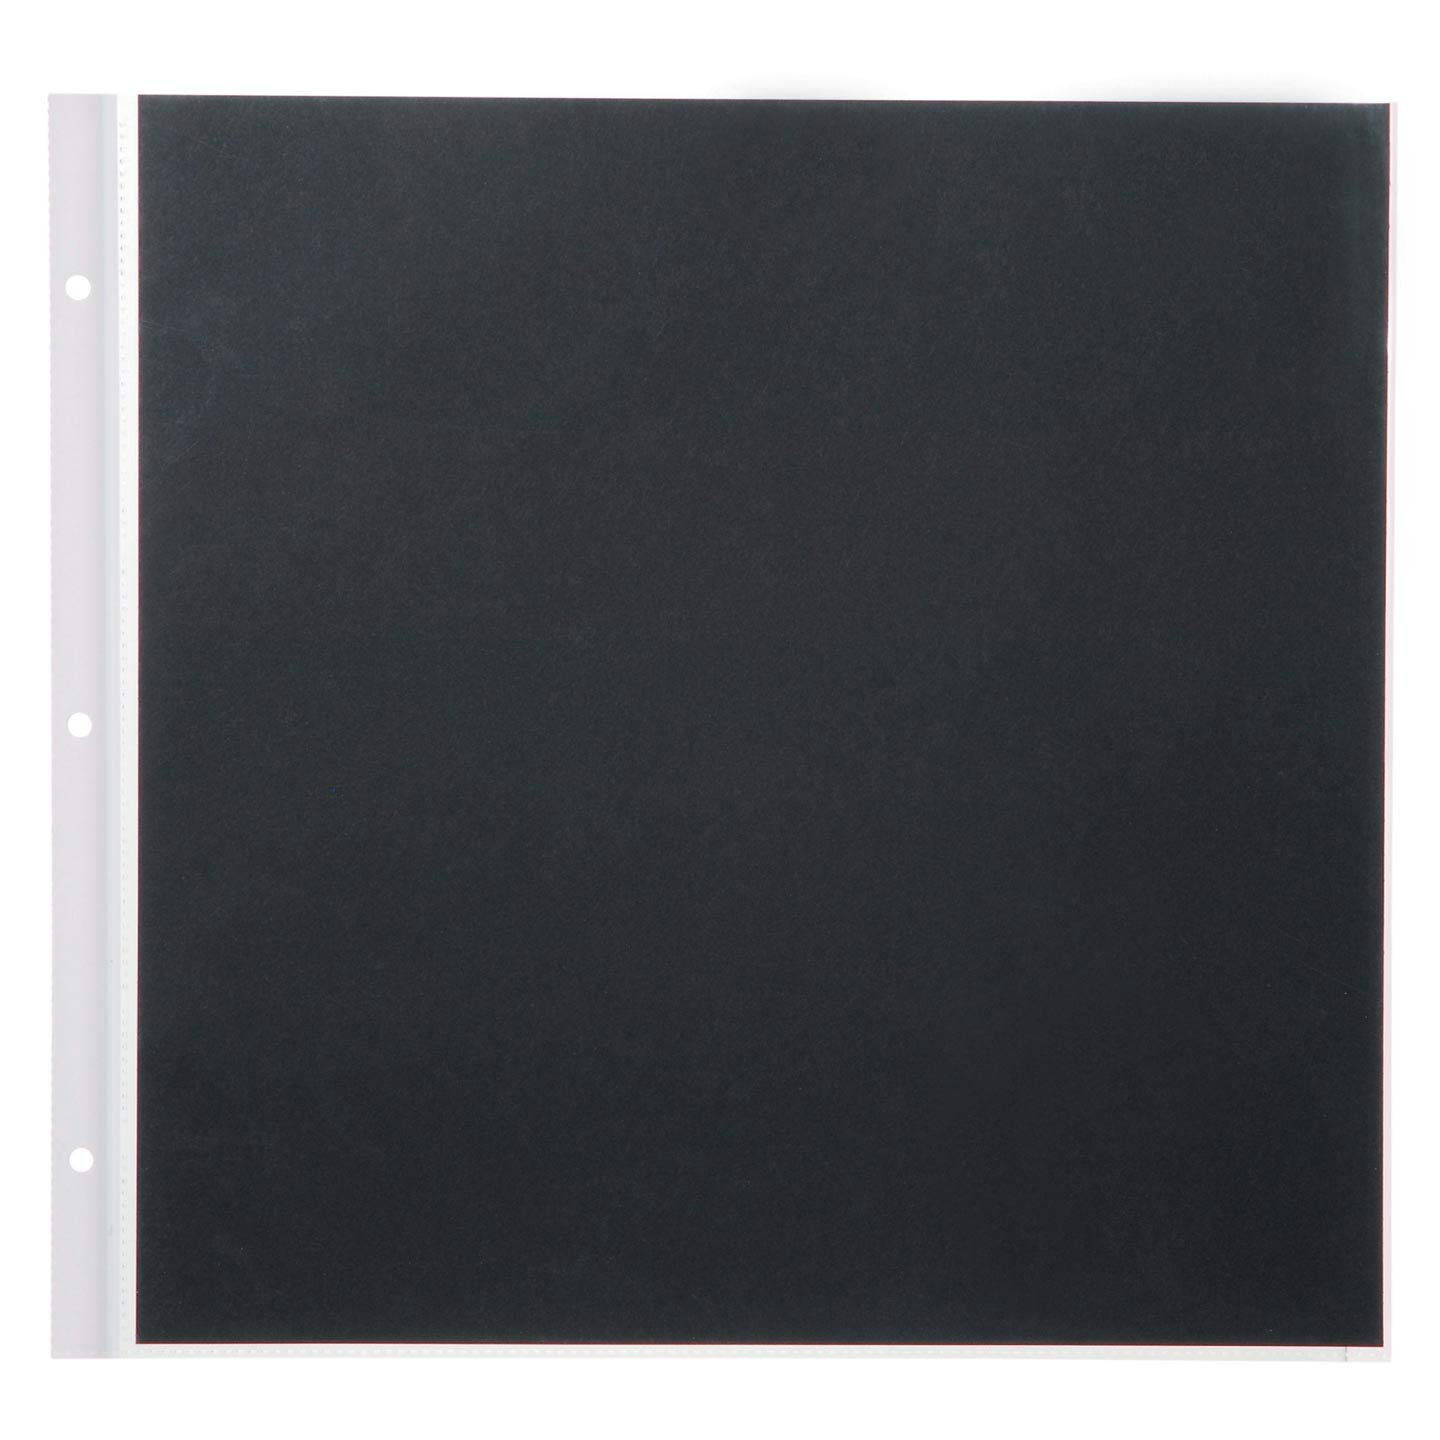 Darice Bulk Buy DIY Memory Book Refill Pages Black 12 x 12 inches 5 Pieces (10-Pack) 1209-94